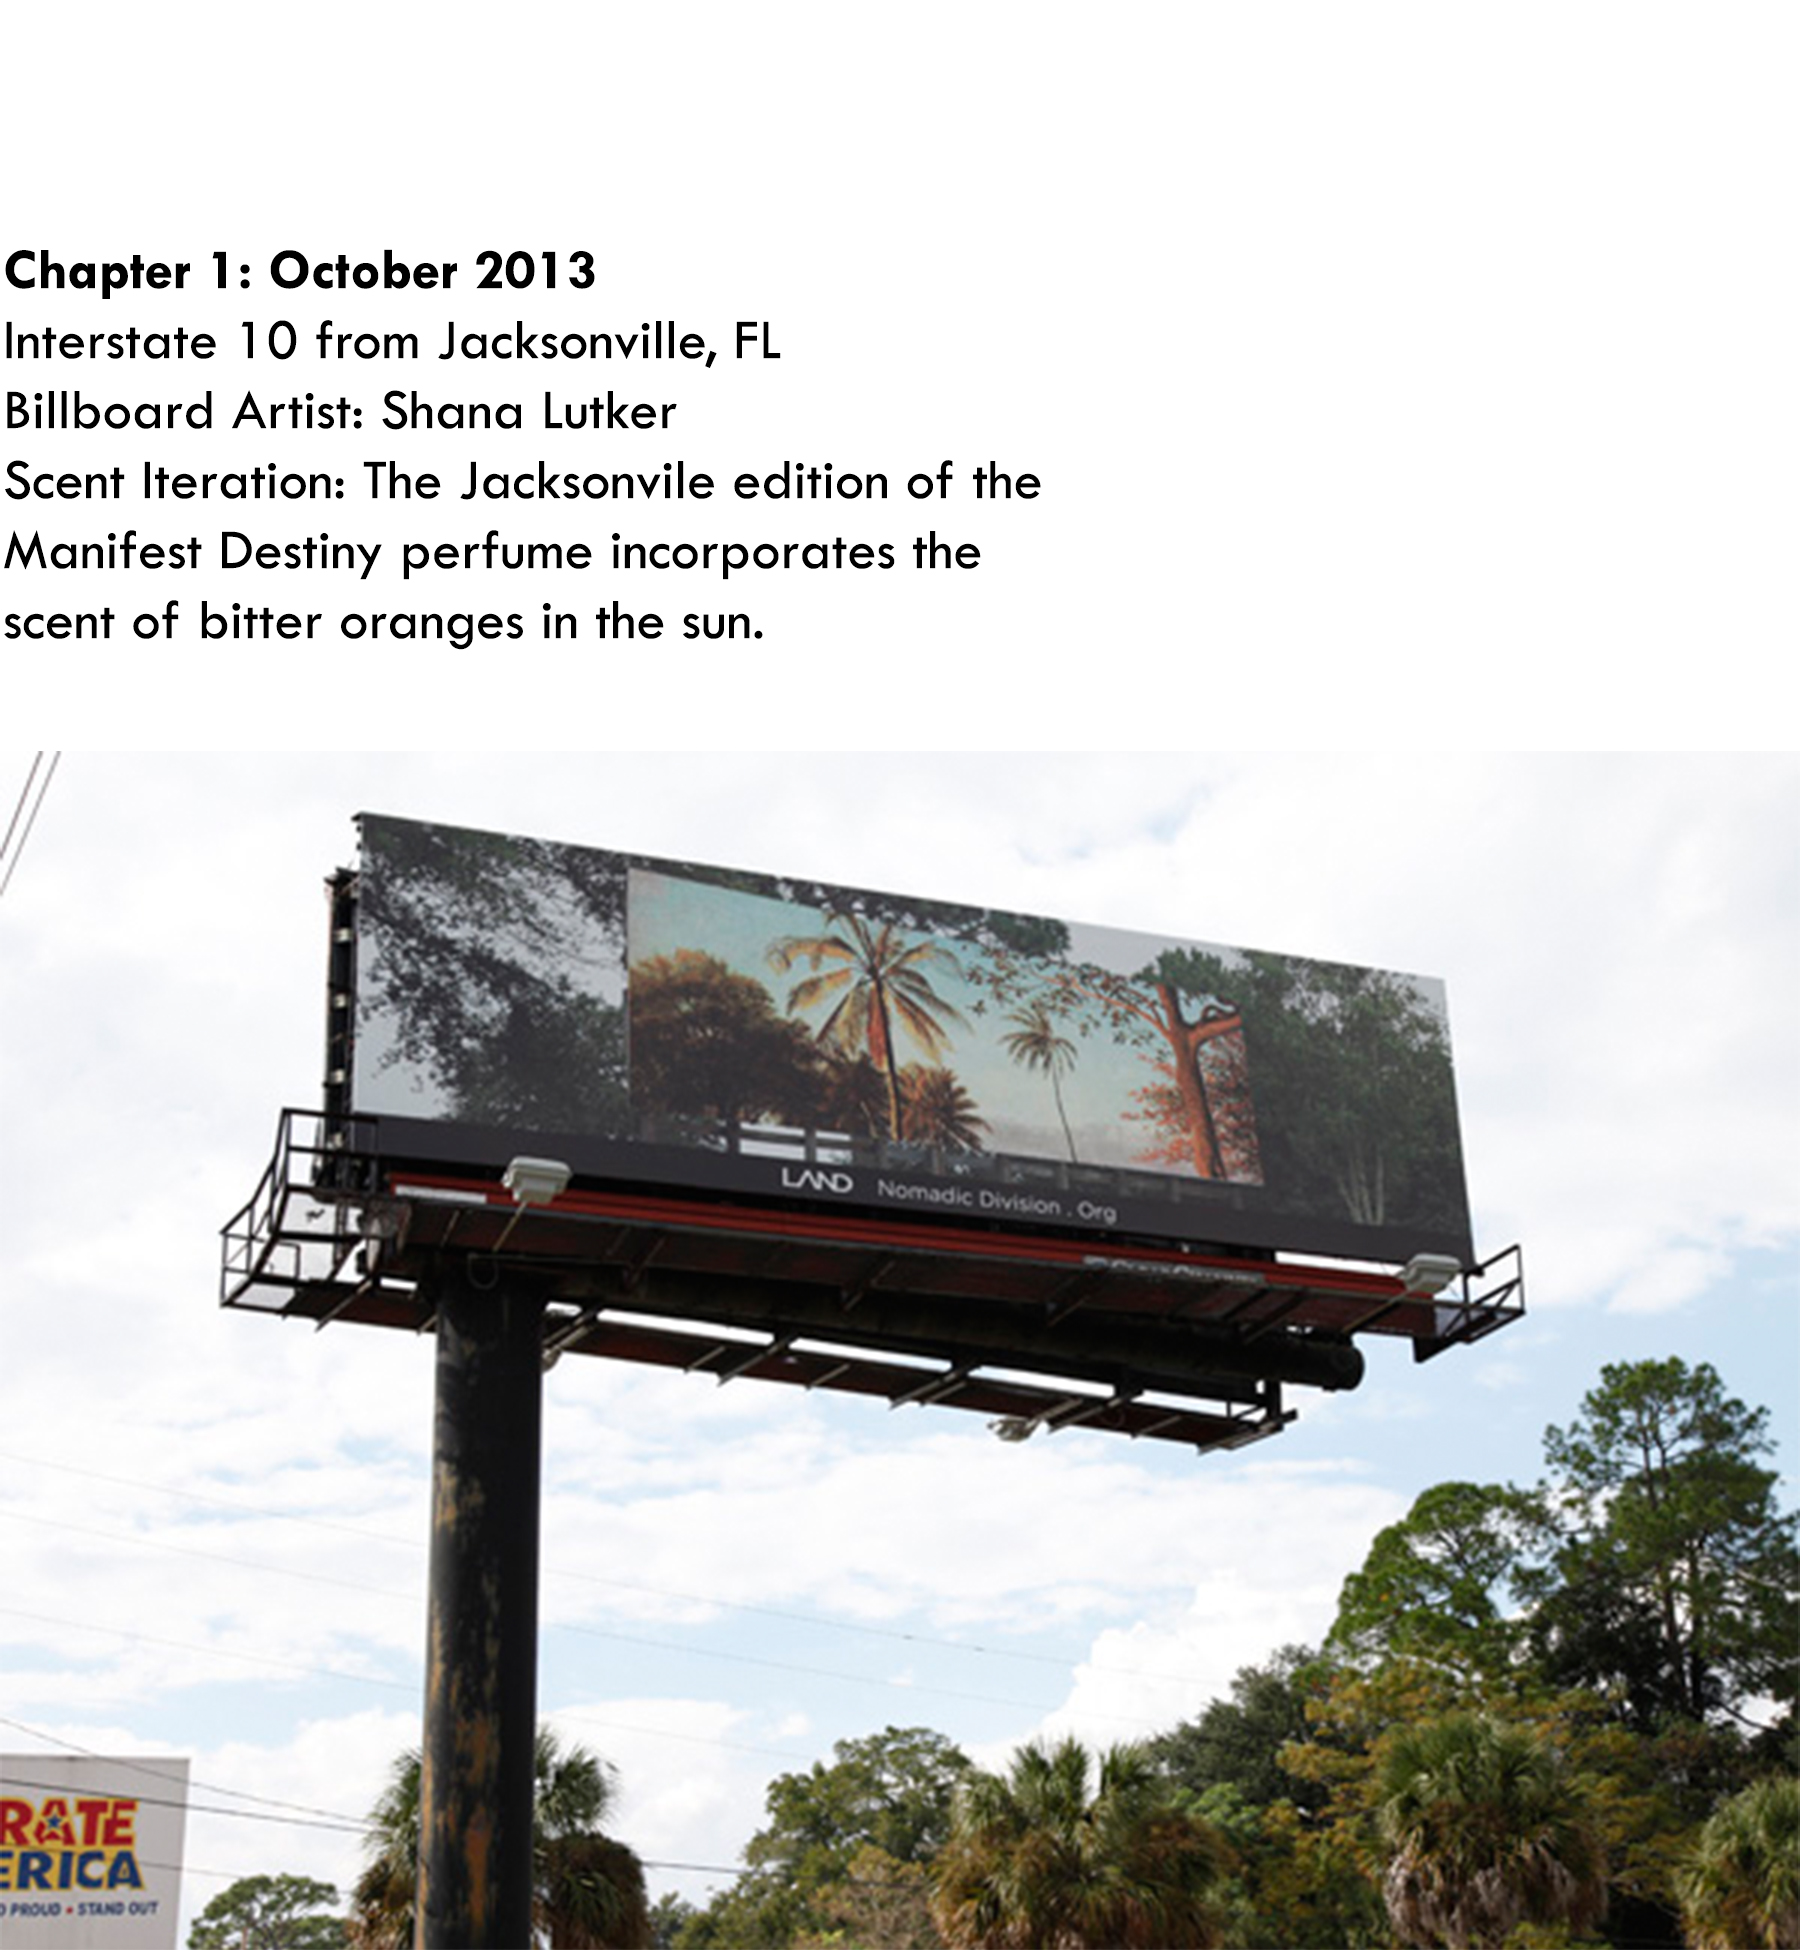 Chapter 1: December 2013, Shana Lutker, Interstate 10 from Jacksonville, FL, Scent Iteration: The scent of bitter oranges in the sun...